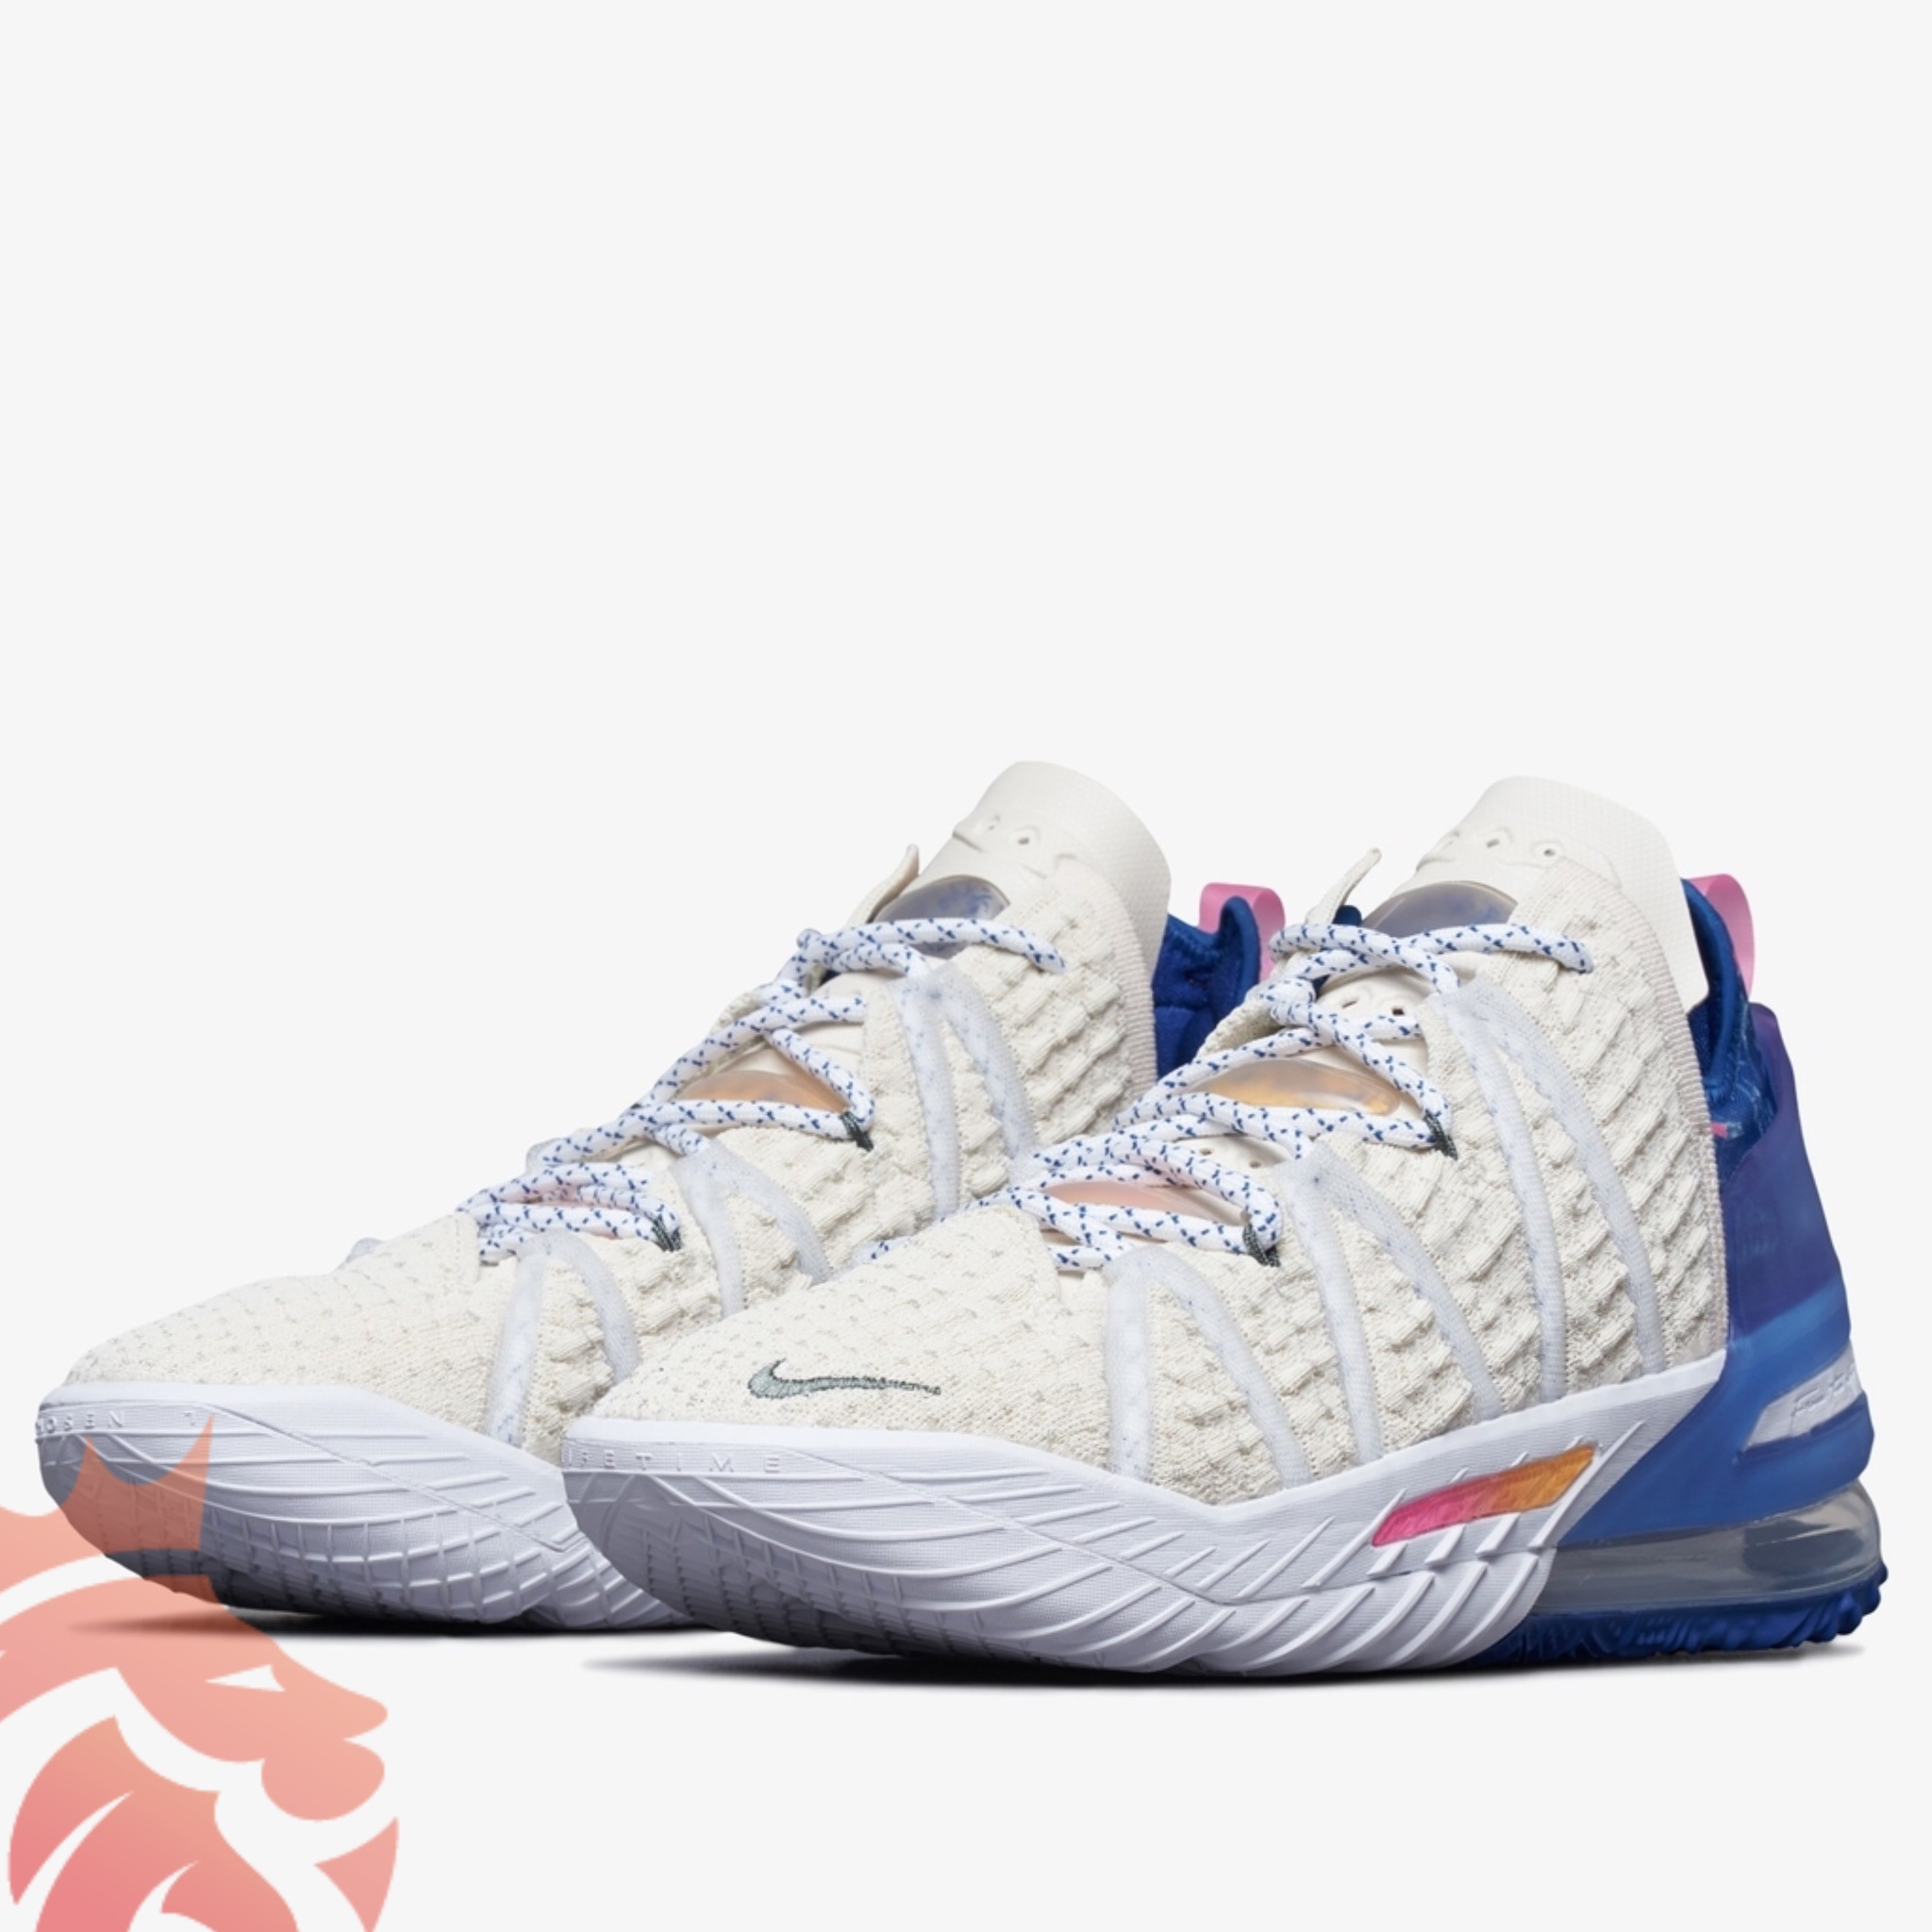 Nike LeBron 18 Light Cream/Pink Glow/Game Royal